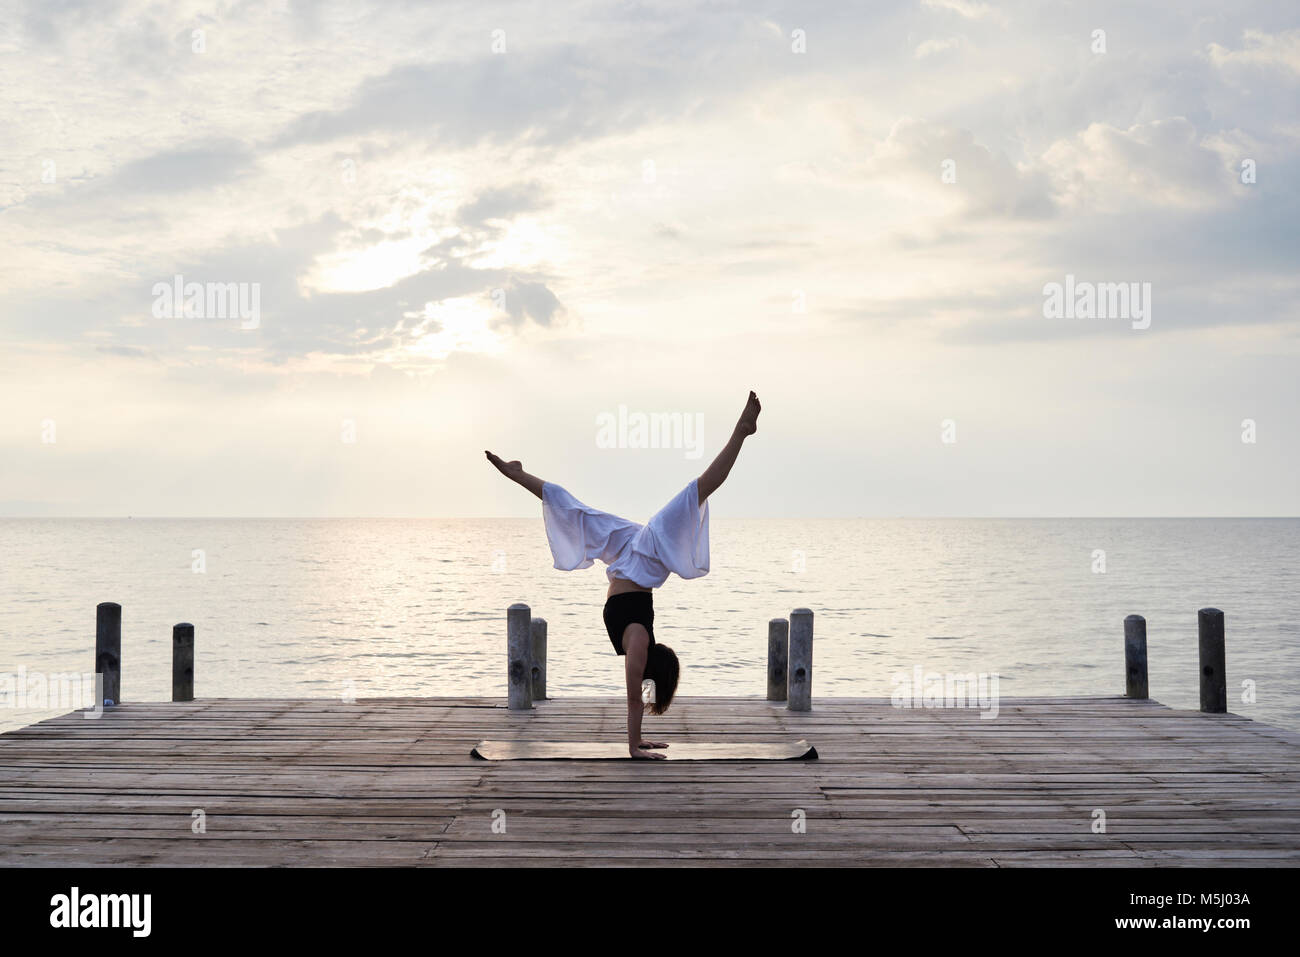 Yoga instructor standing upside down on hands while doing yoga against sunset and sea. Kep, Cambodia. - Stock Image